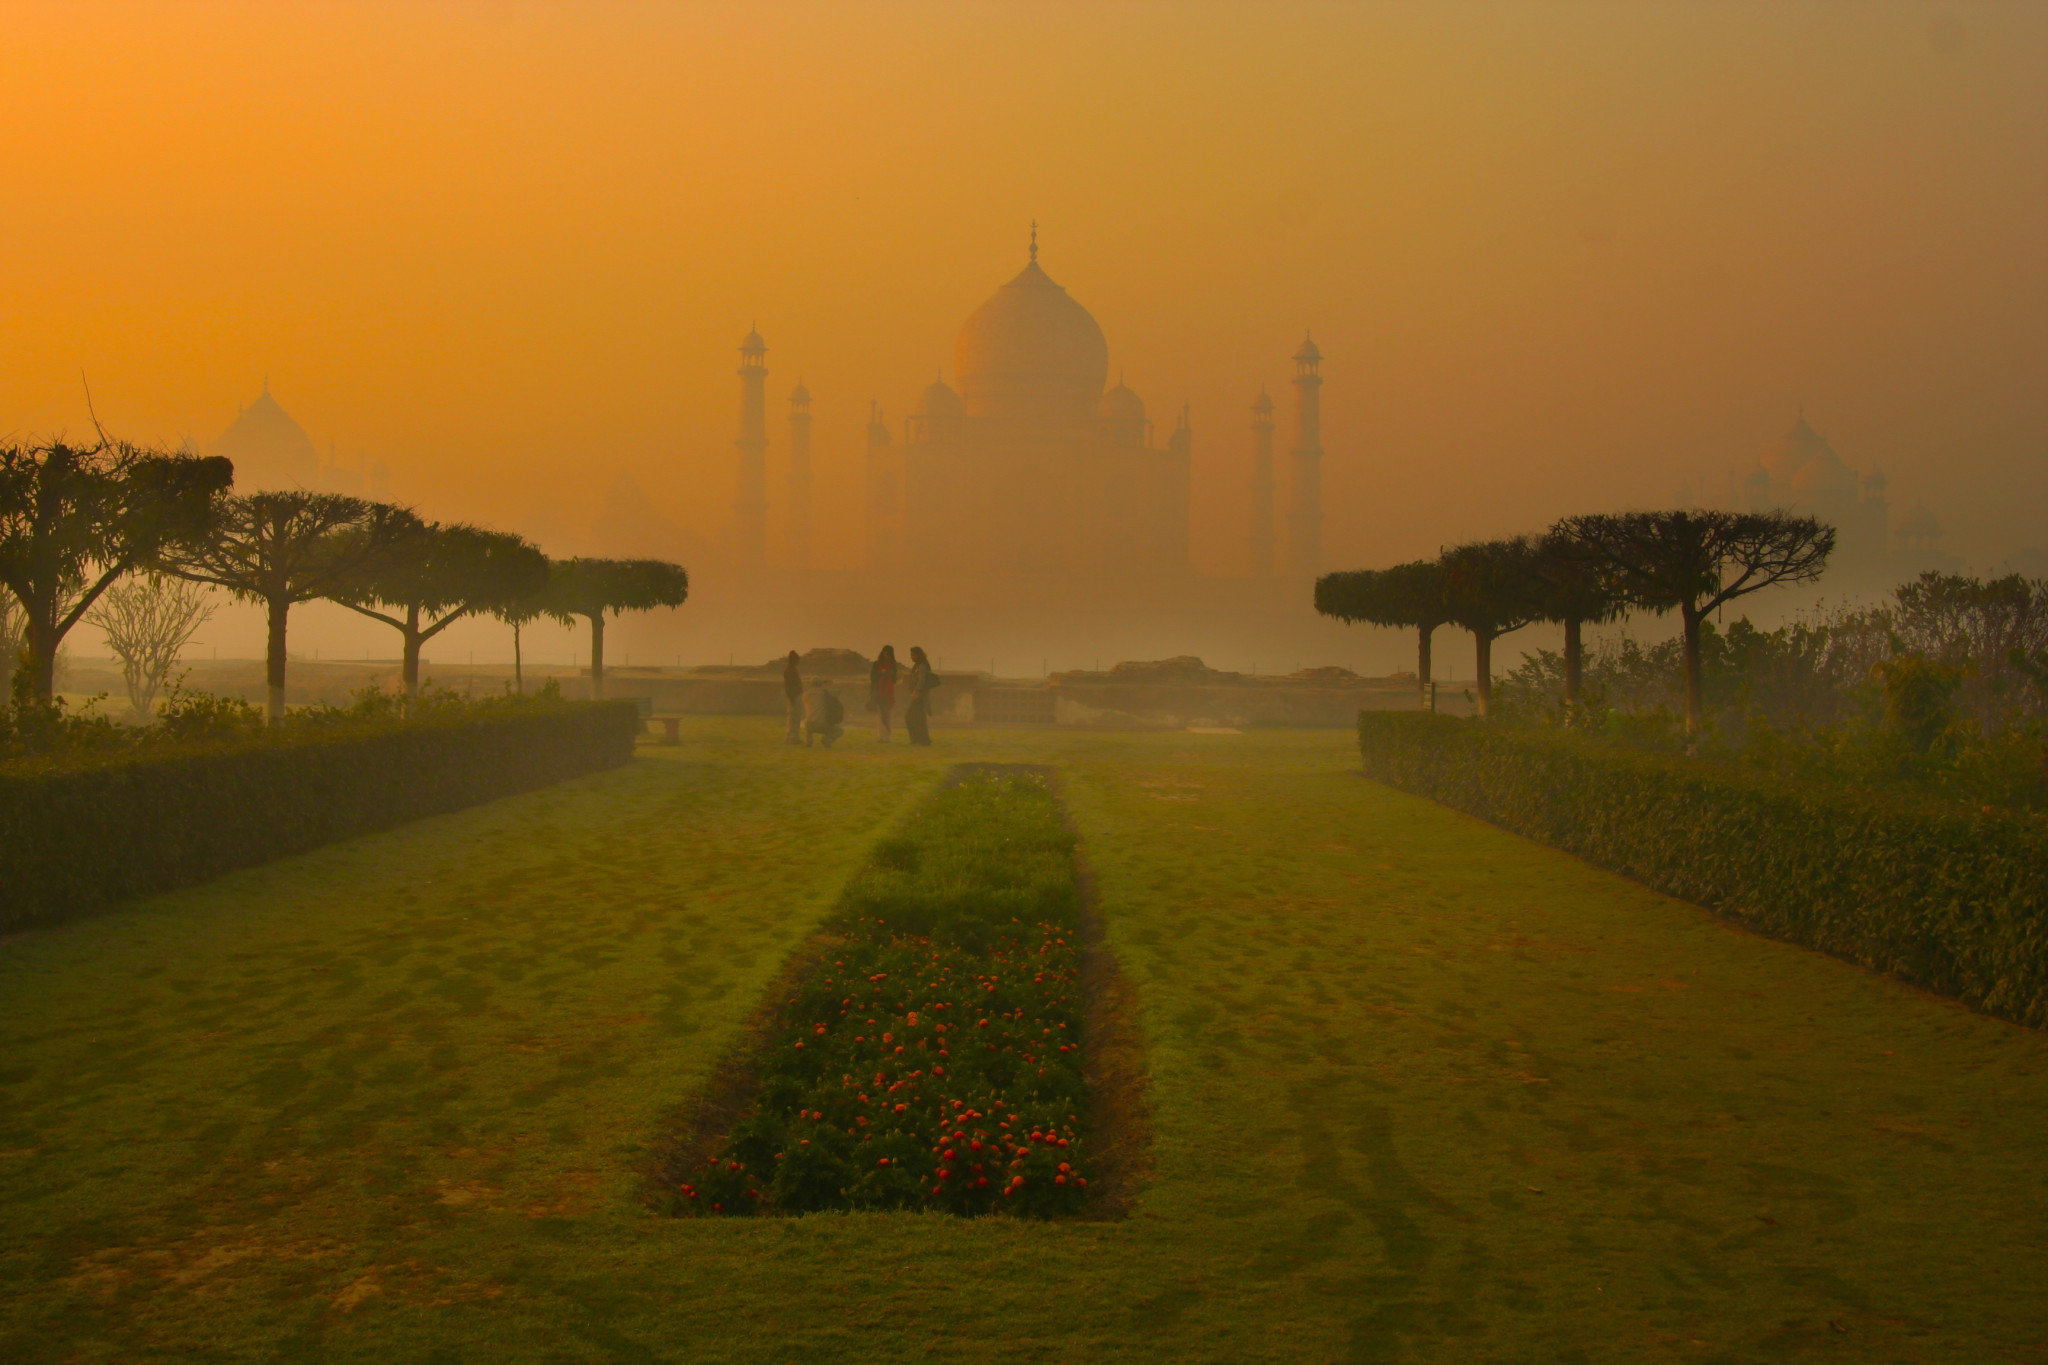 Mehtab garden - One of the must visit Tourist places in Agra